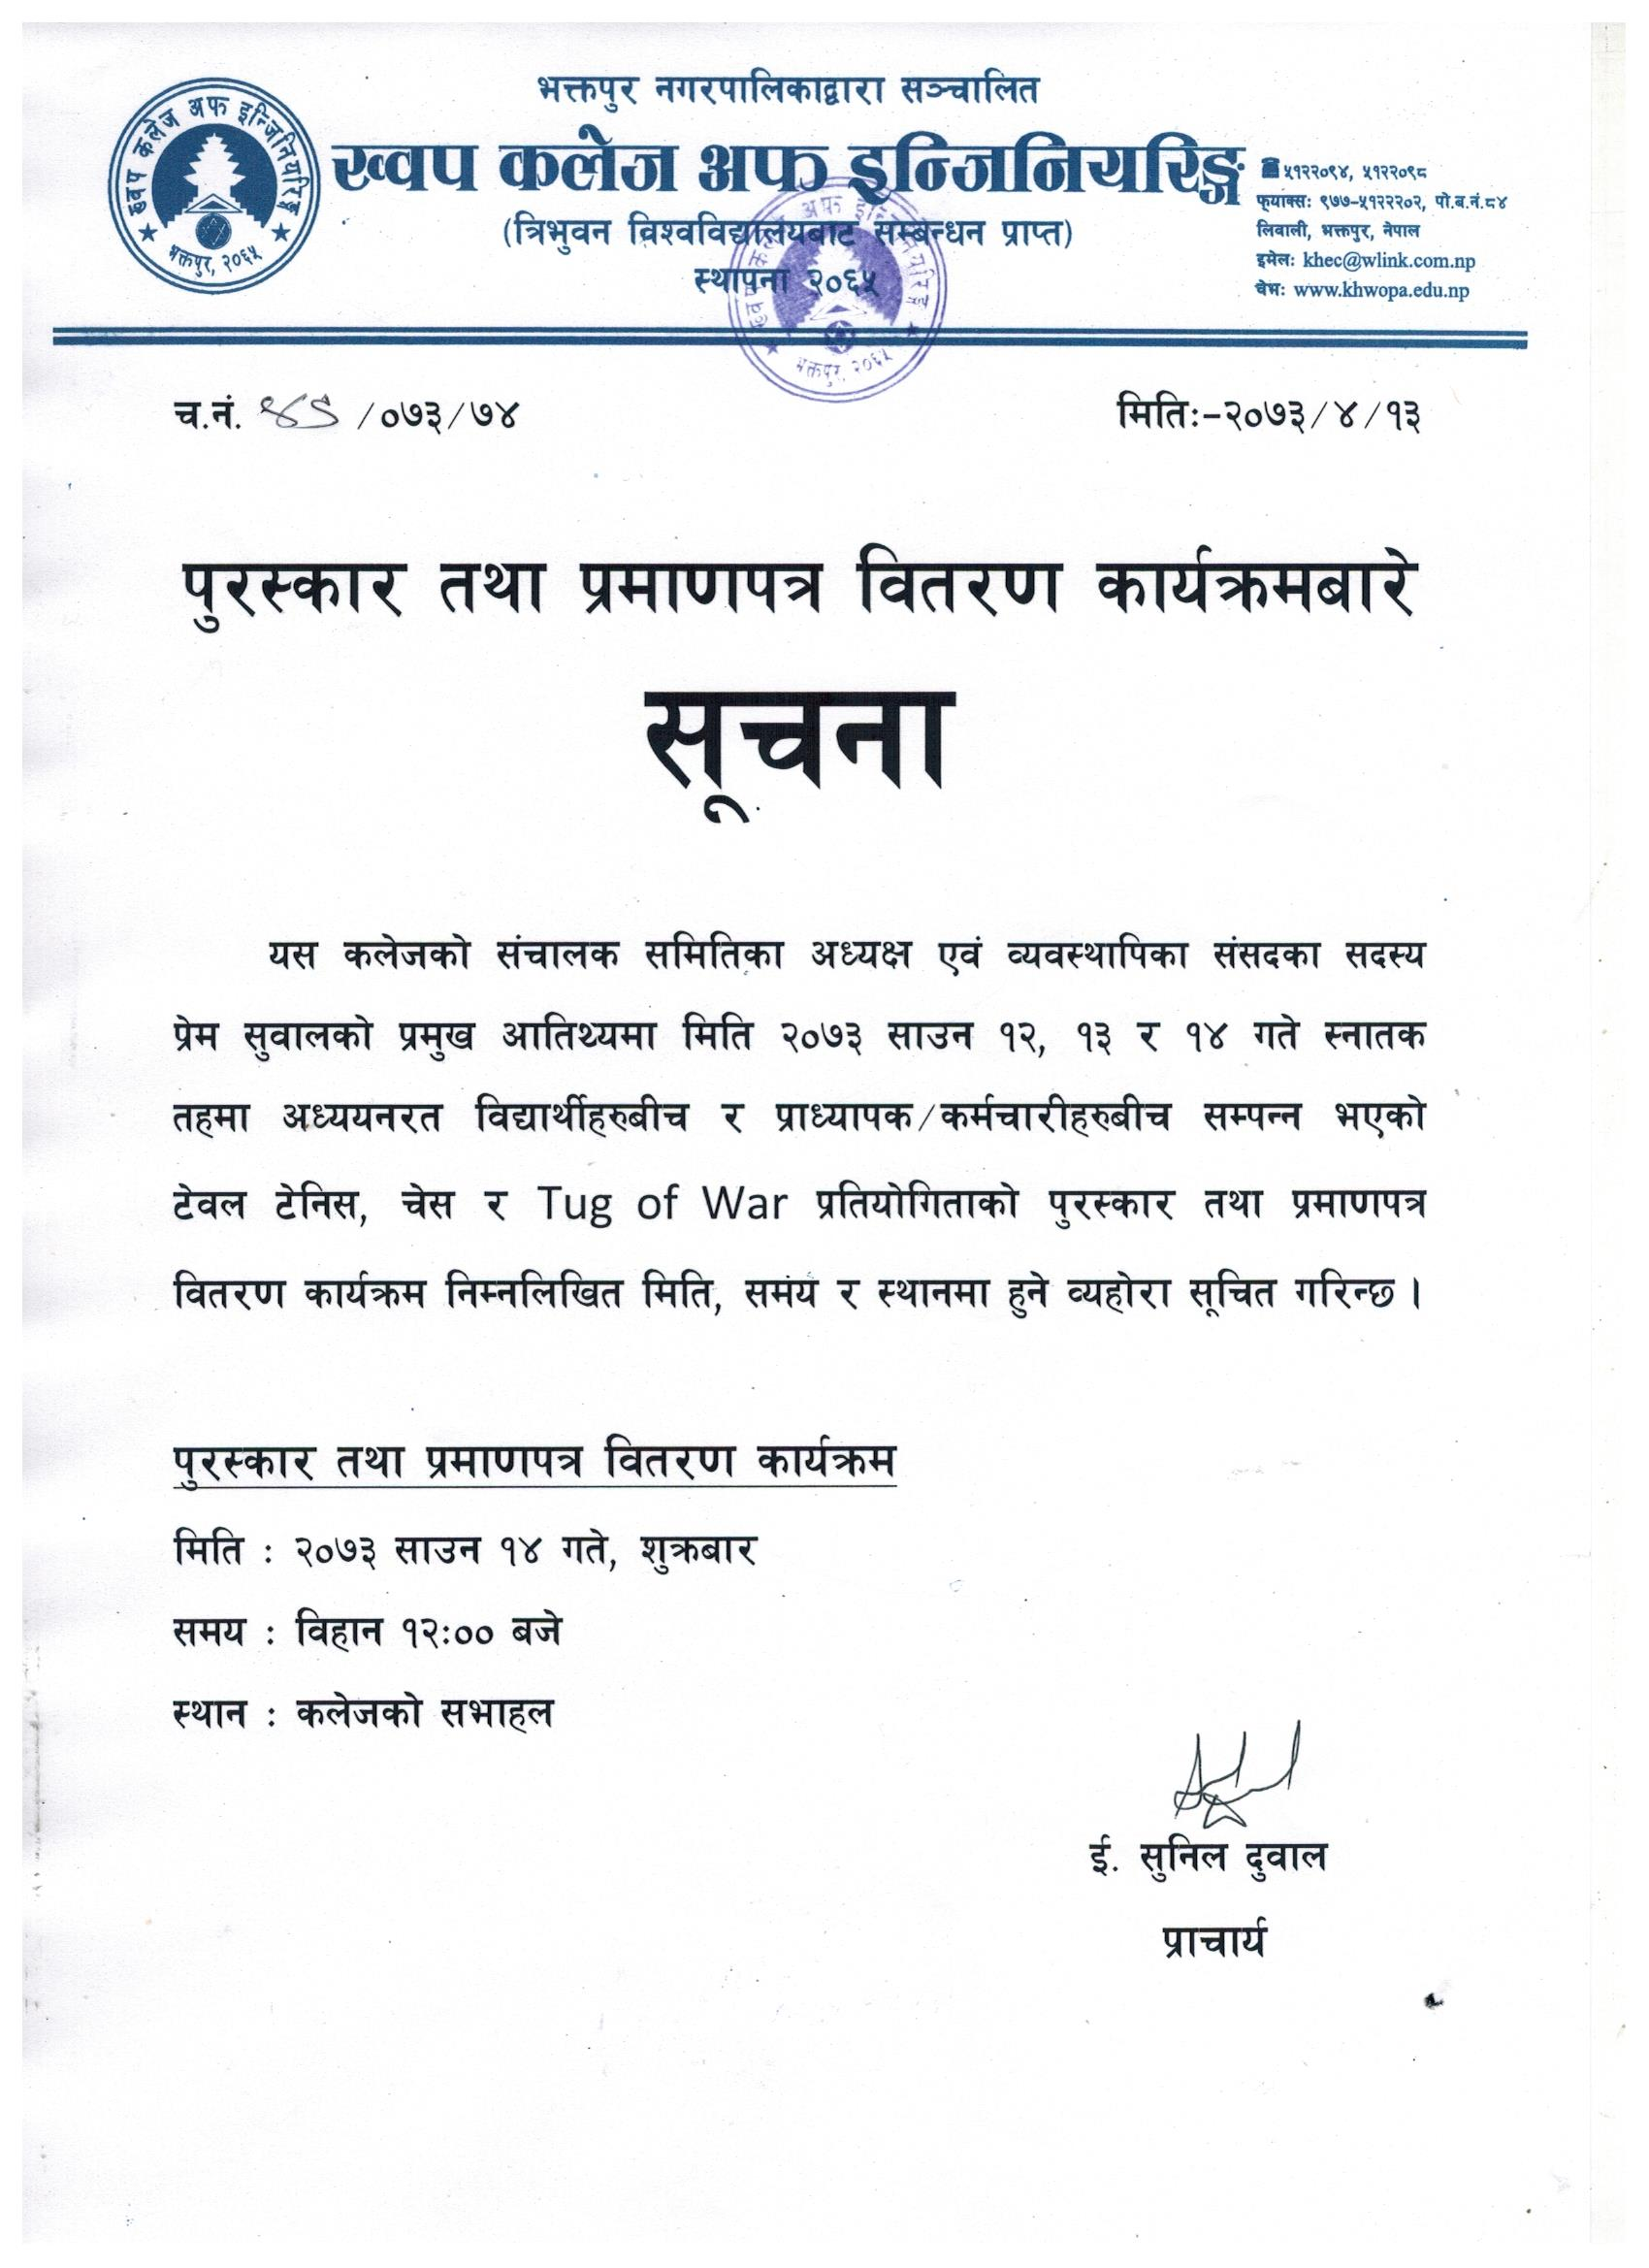 Notice for the closing ceremony and prize distribution program of sports competition 2073